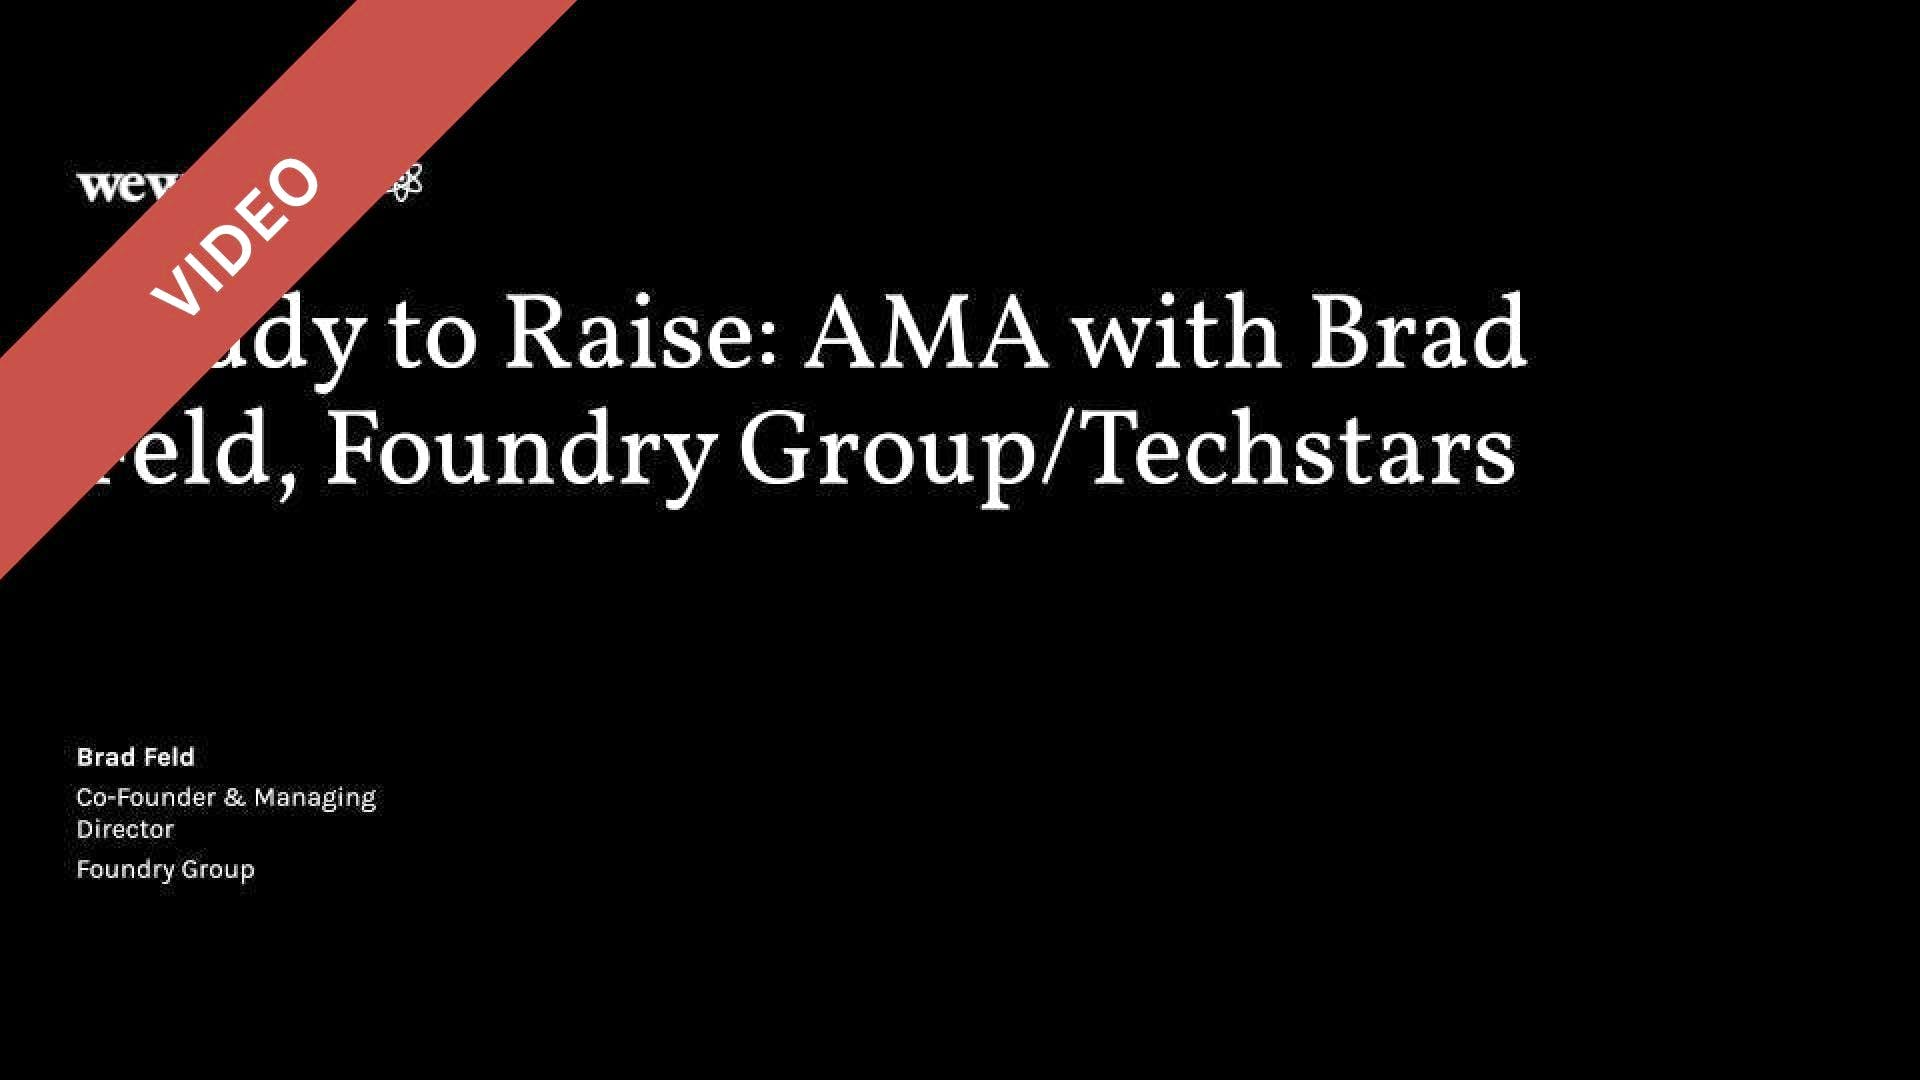 Ready to Raise: AMA with Brad Feld, Foundry Group/Techstars